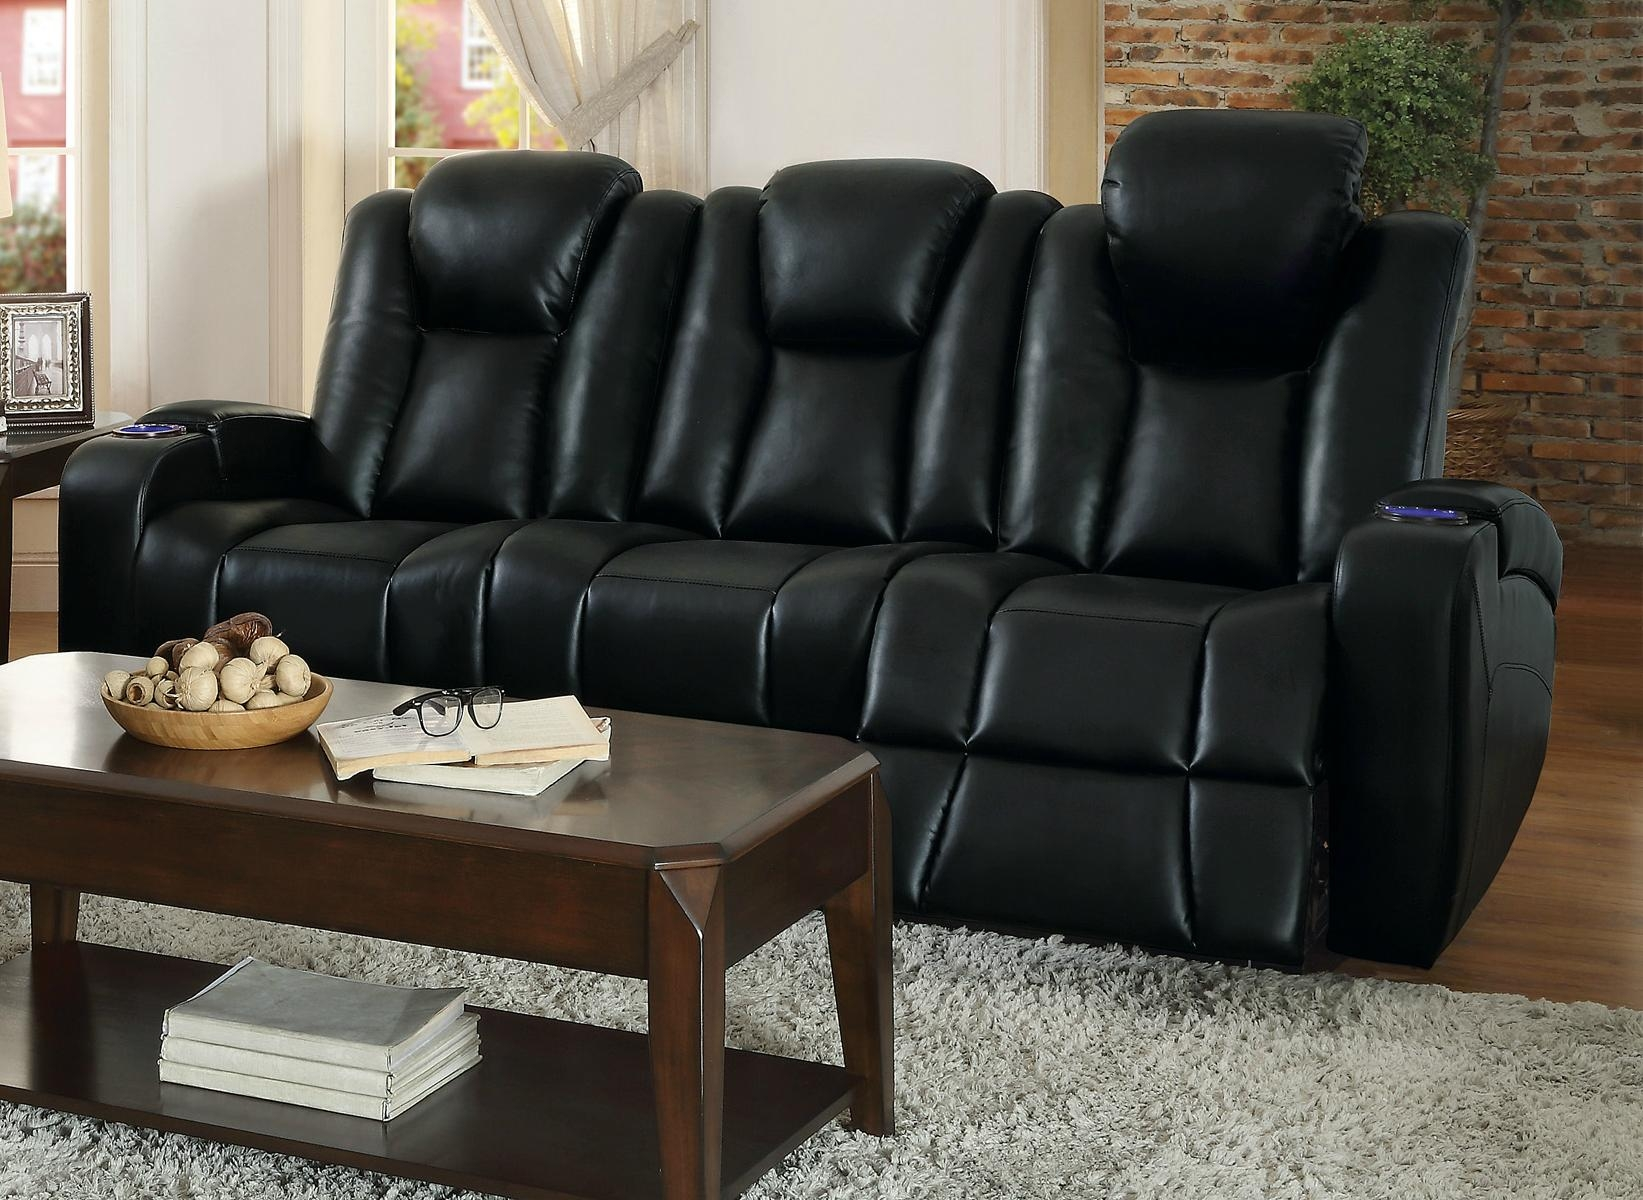 Sofas Center : Reclining Sofas With Consoles Dual Sofa Center Pertaining To Sofas With Consoles (Image 18 of 20)